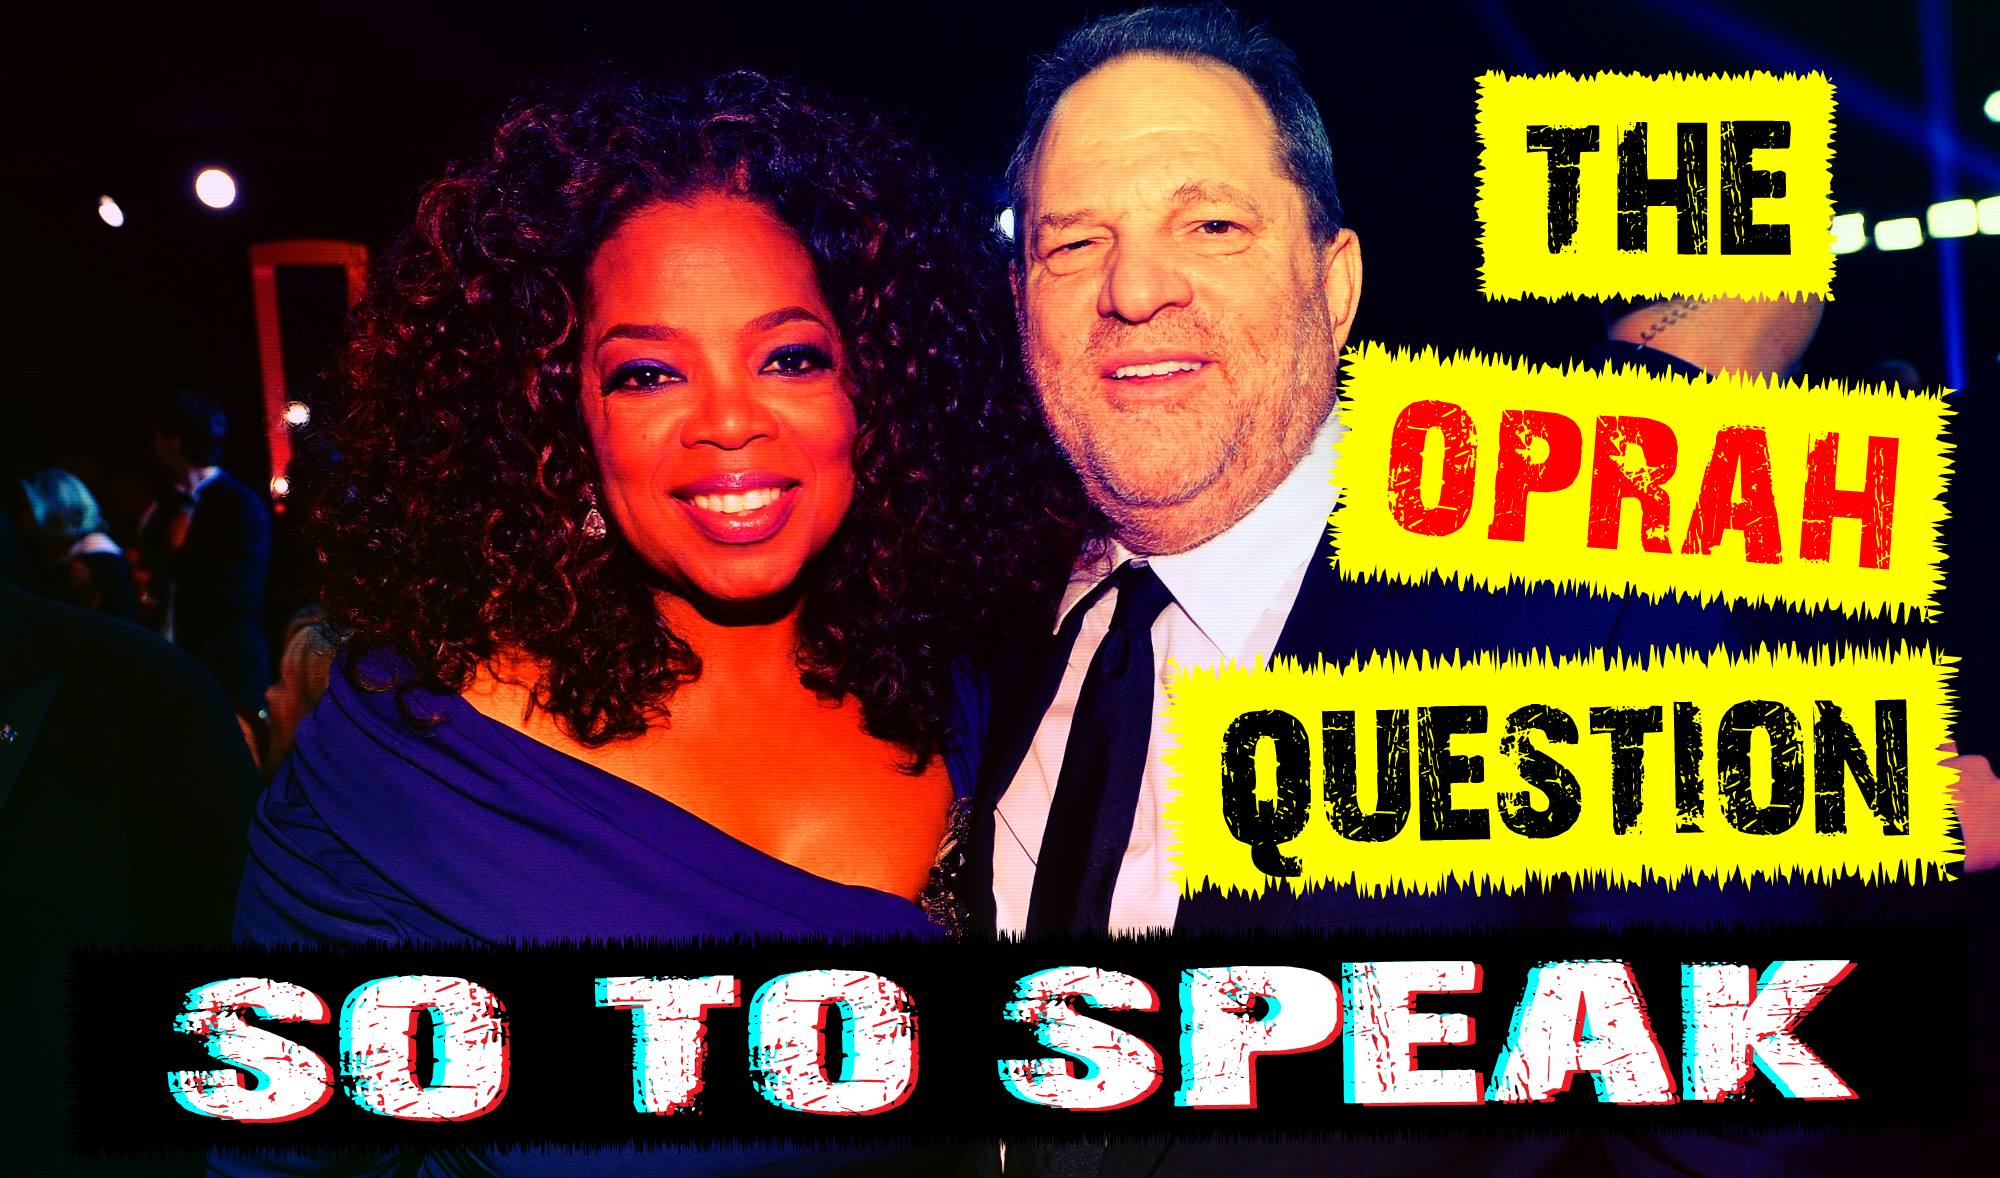 Is Oprah helping Jewish pedophiles like harvey weinstein, jeffrey epstein, and john of god procure underage girls for the rich and famous?